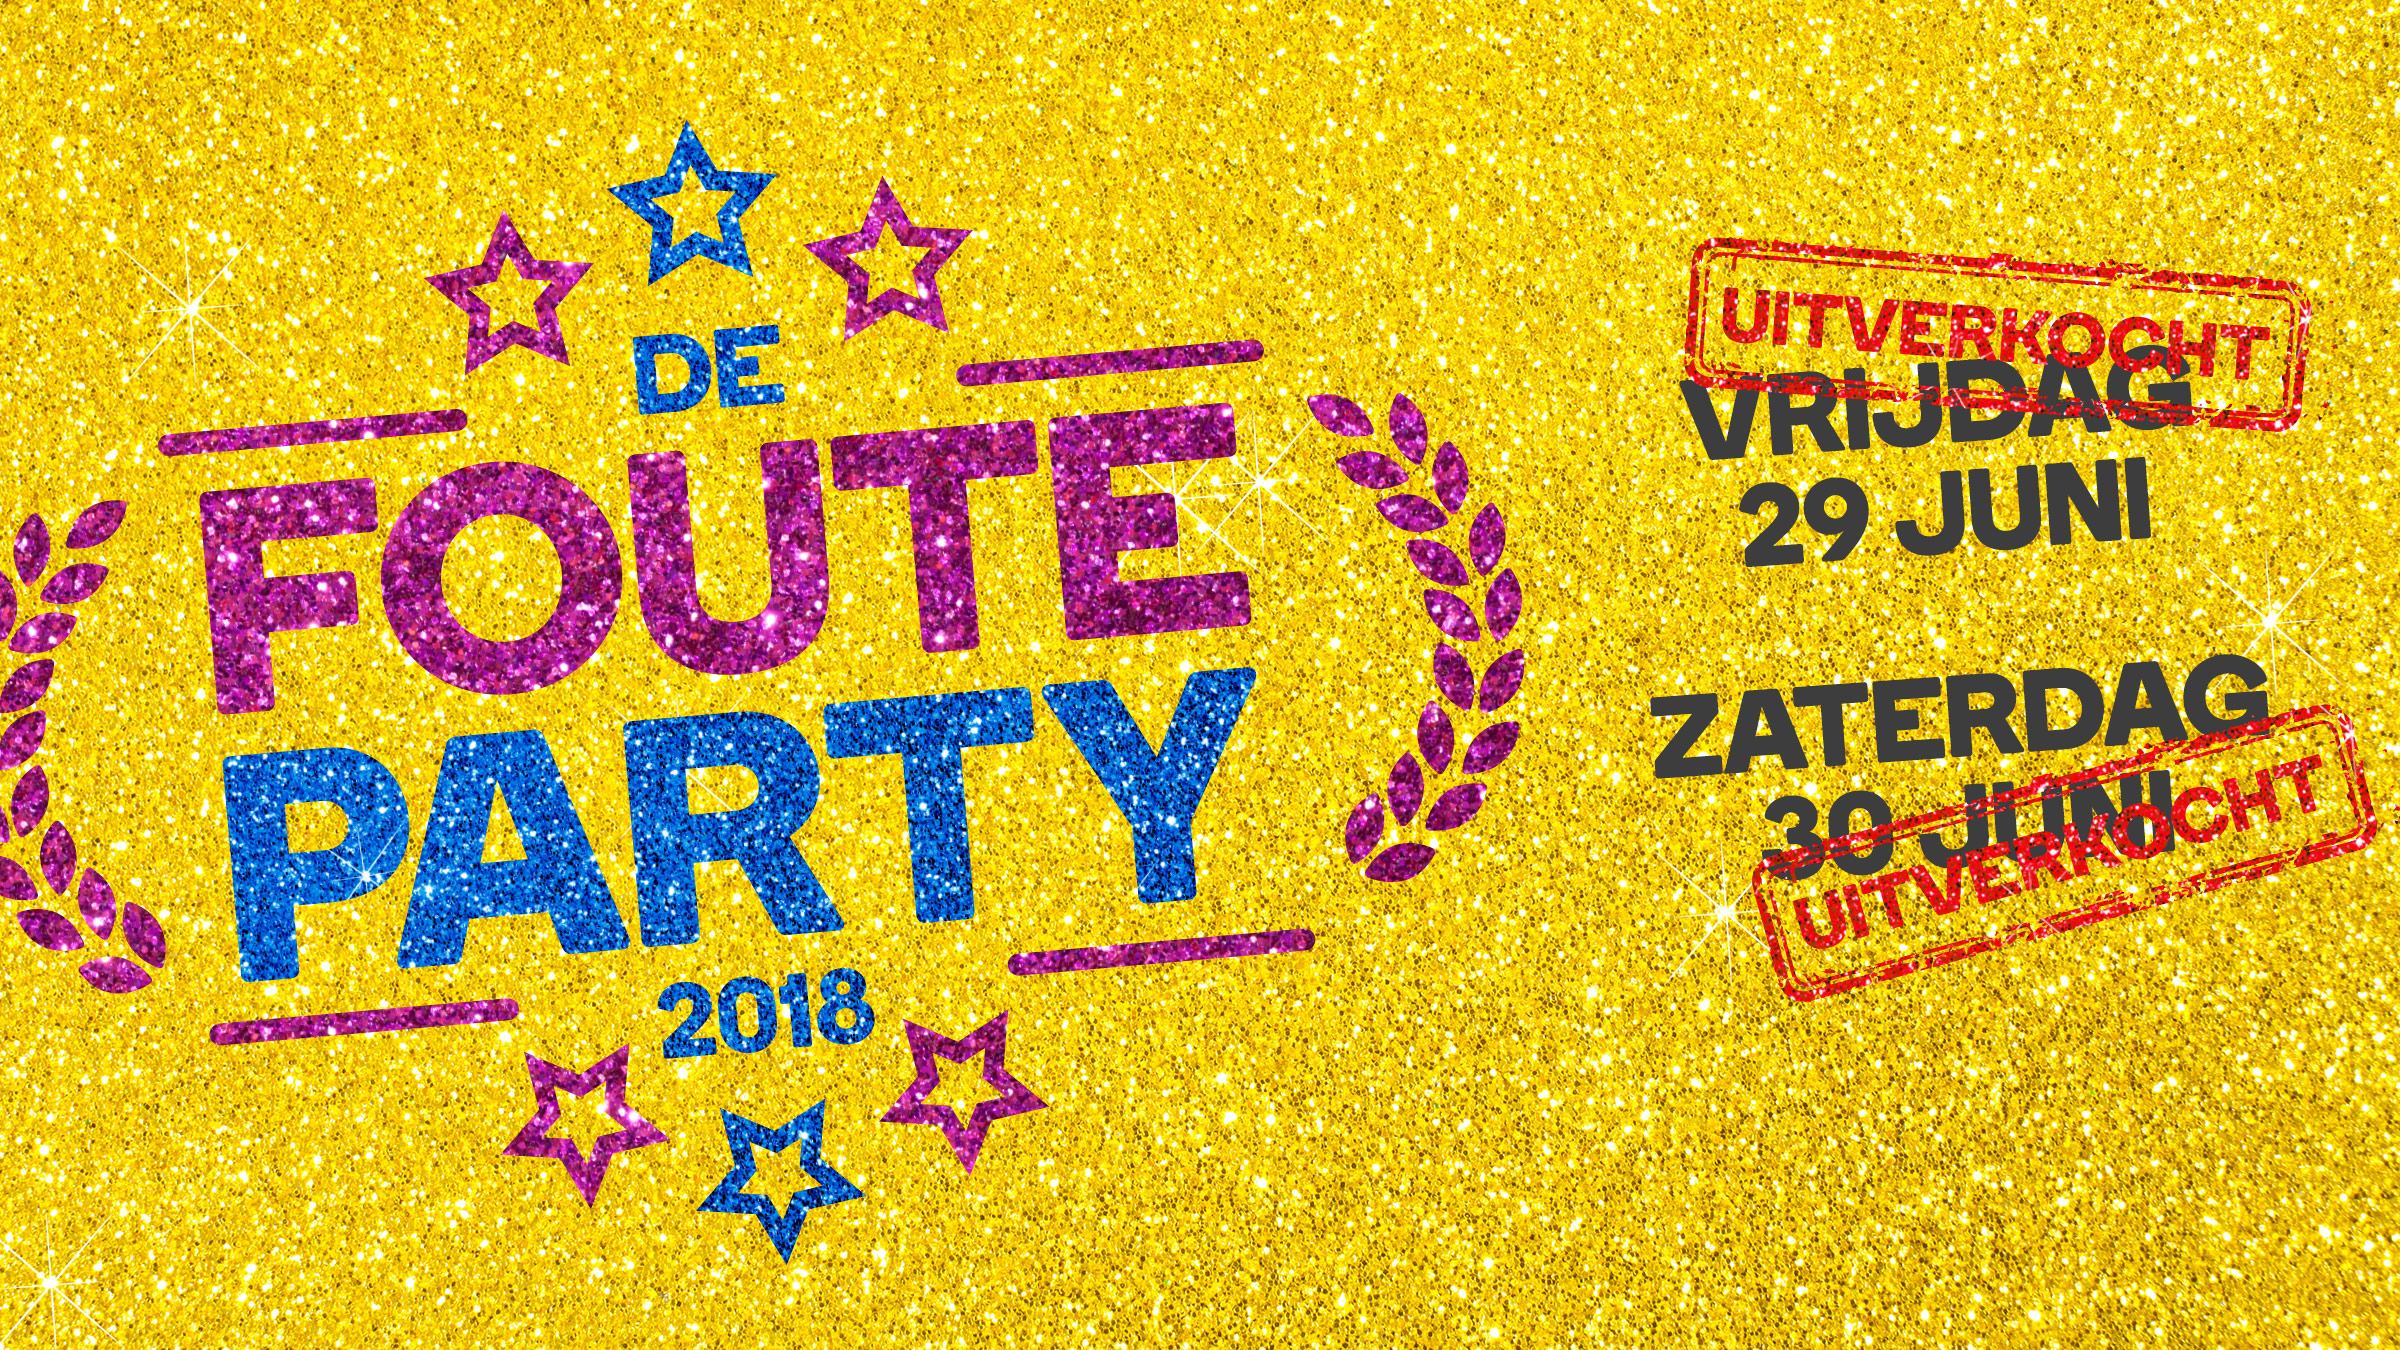 Qmusic teaser fouteparty2018 uitv